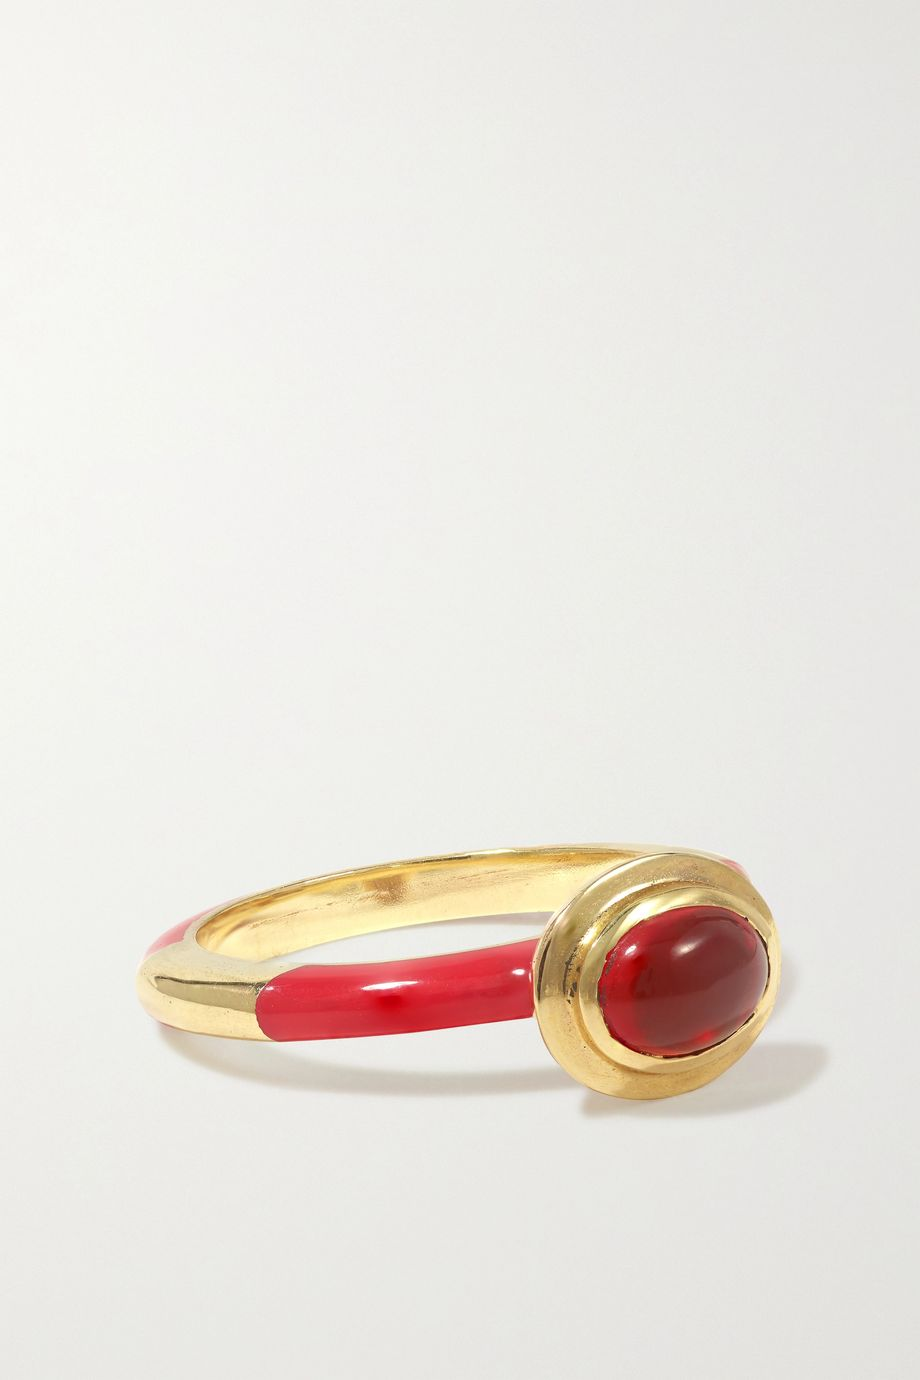 Alice Cicolini Candy 14-karat gold, enamel and opal ring